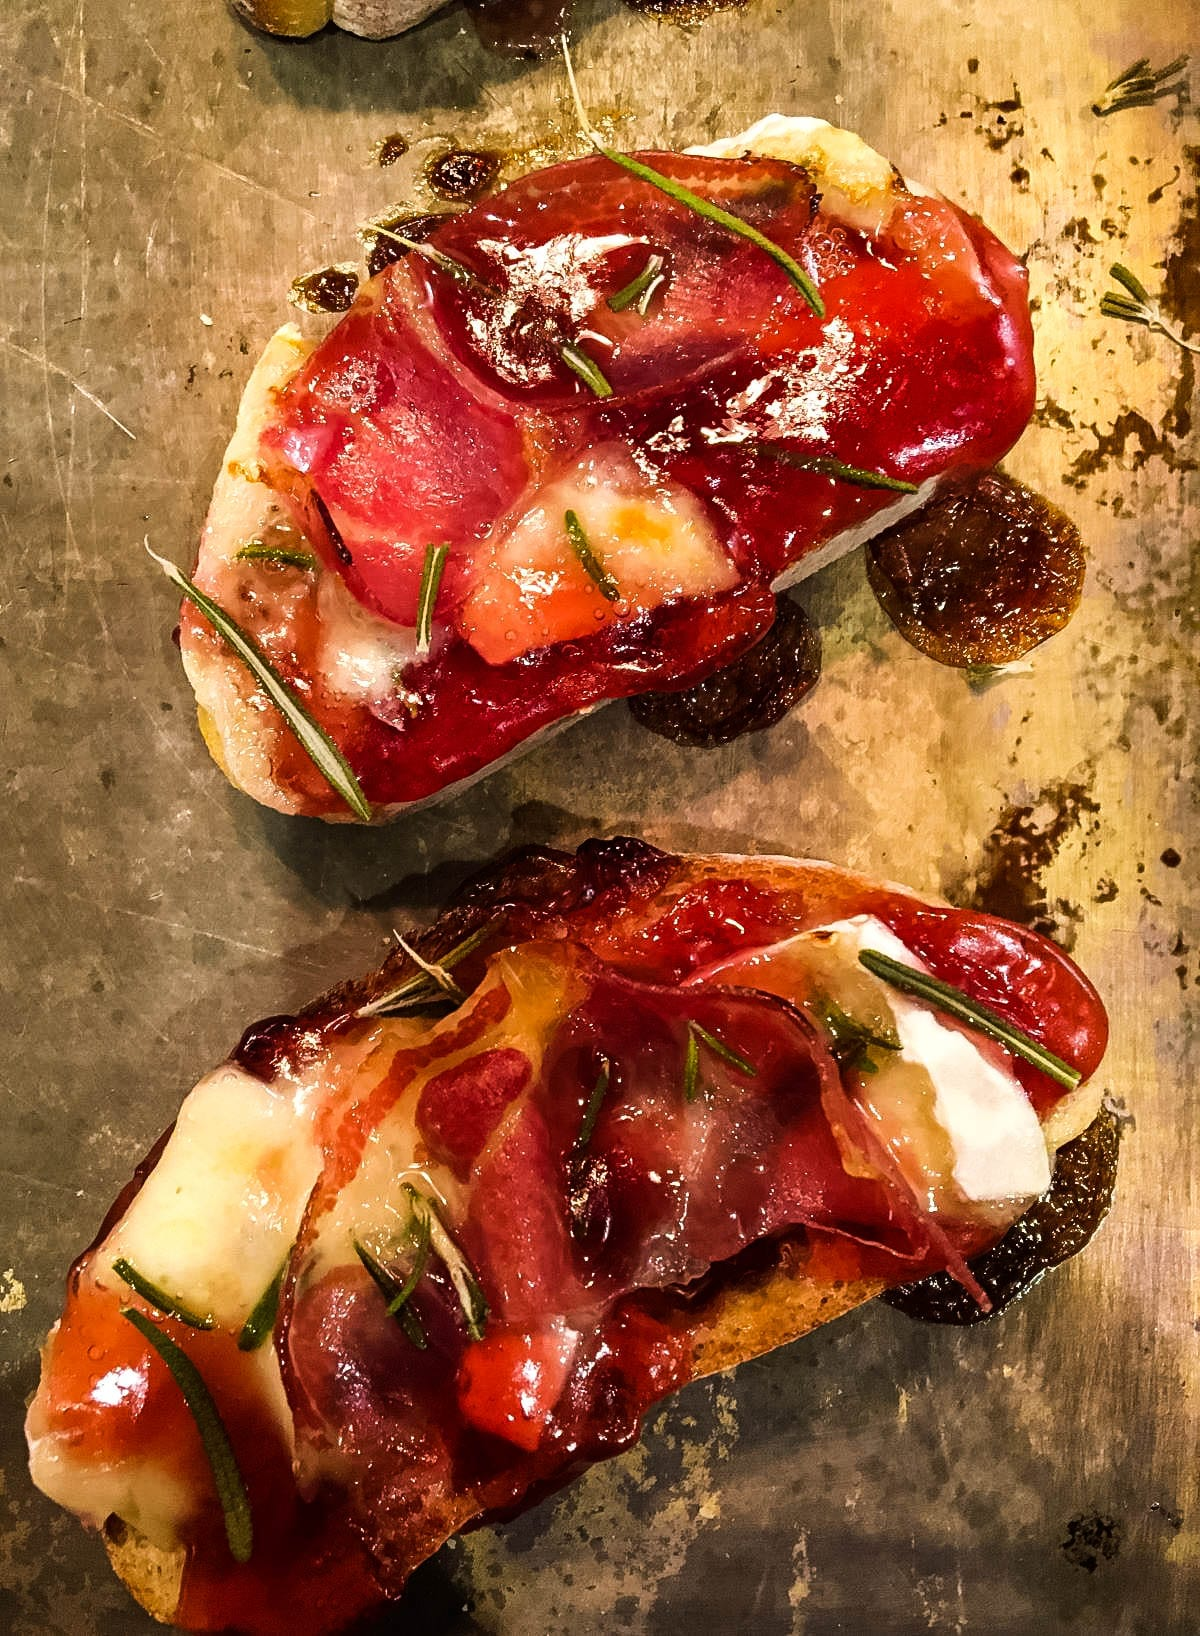 Crostini with Brie and Coppa and Raspberry on baking sheet after being broiled